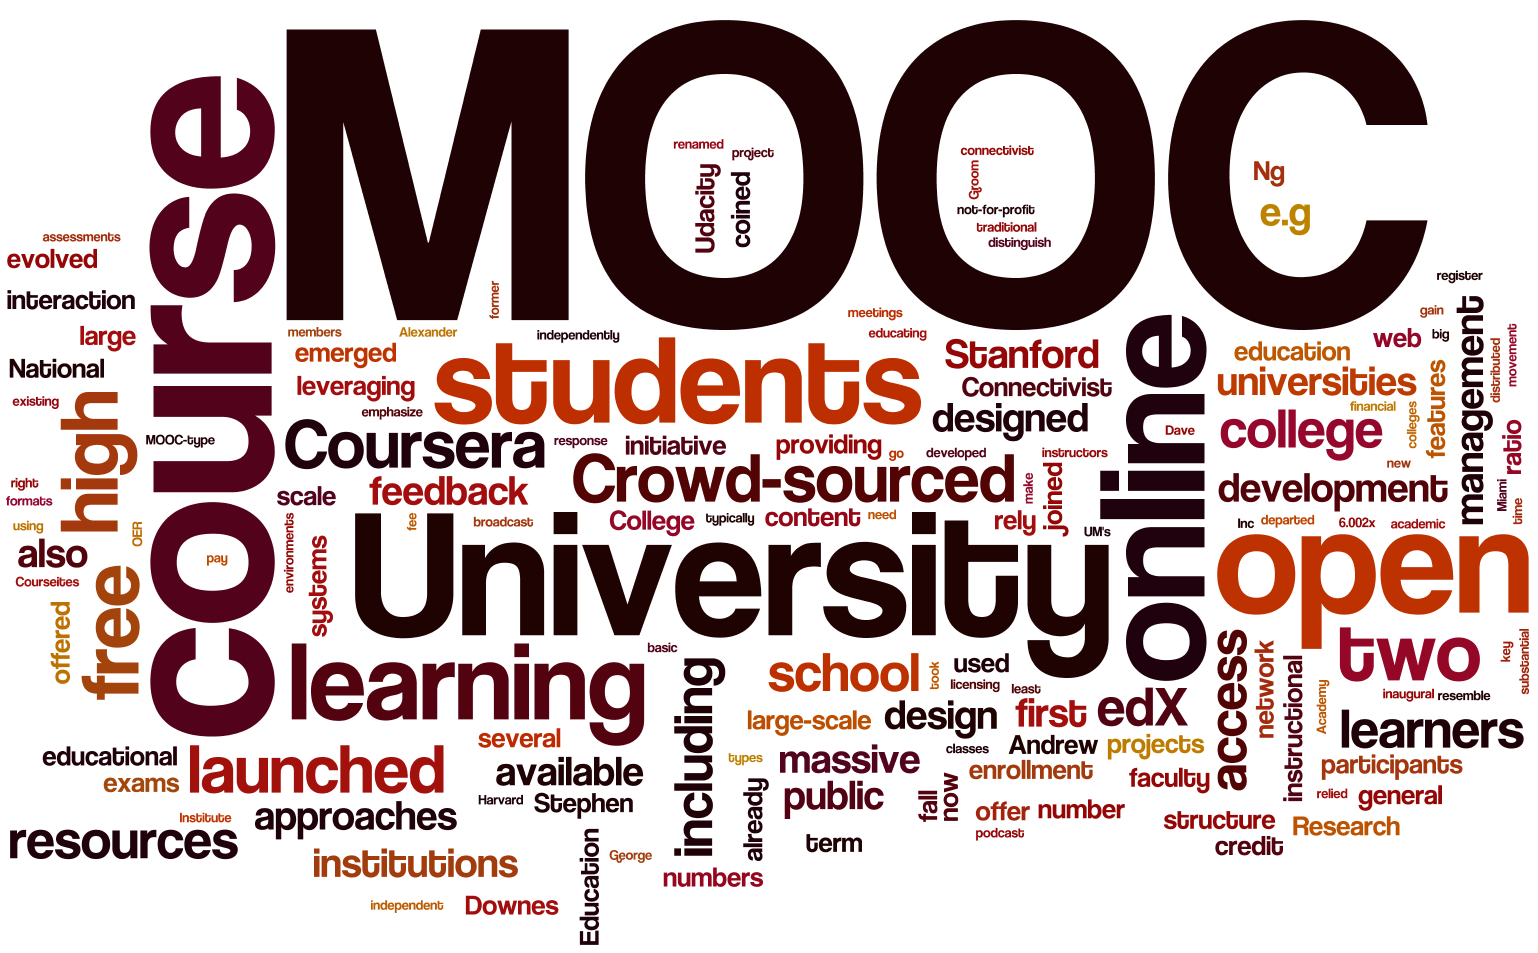 Word cloud in browns, maroons, and oranges with words like MOOC, course, college, crowd-sourced, college, etc.